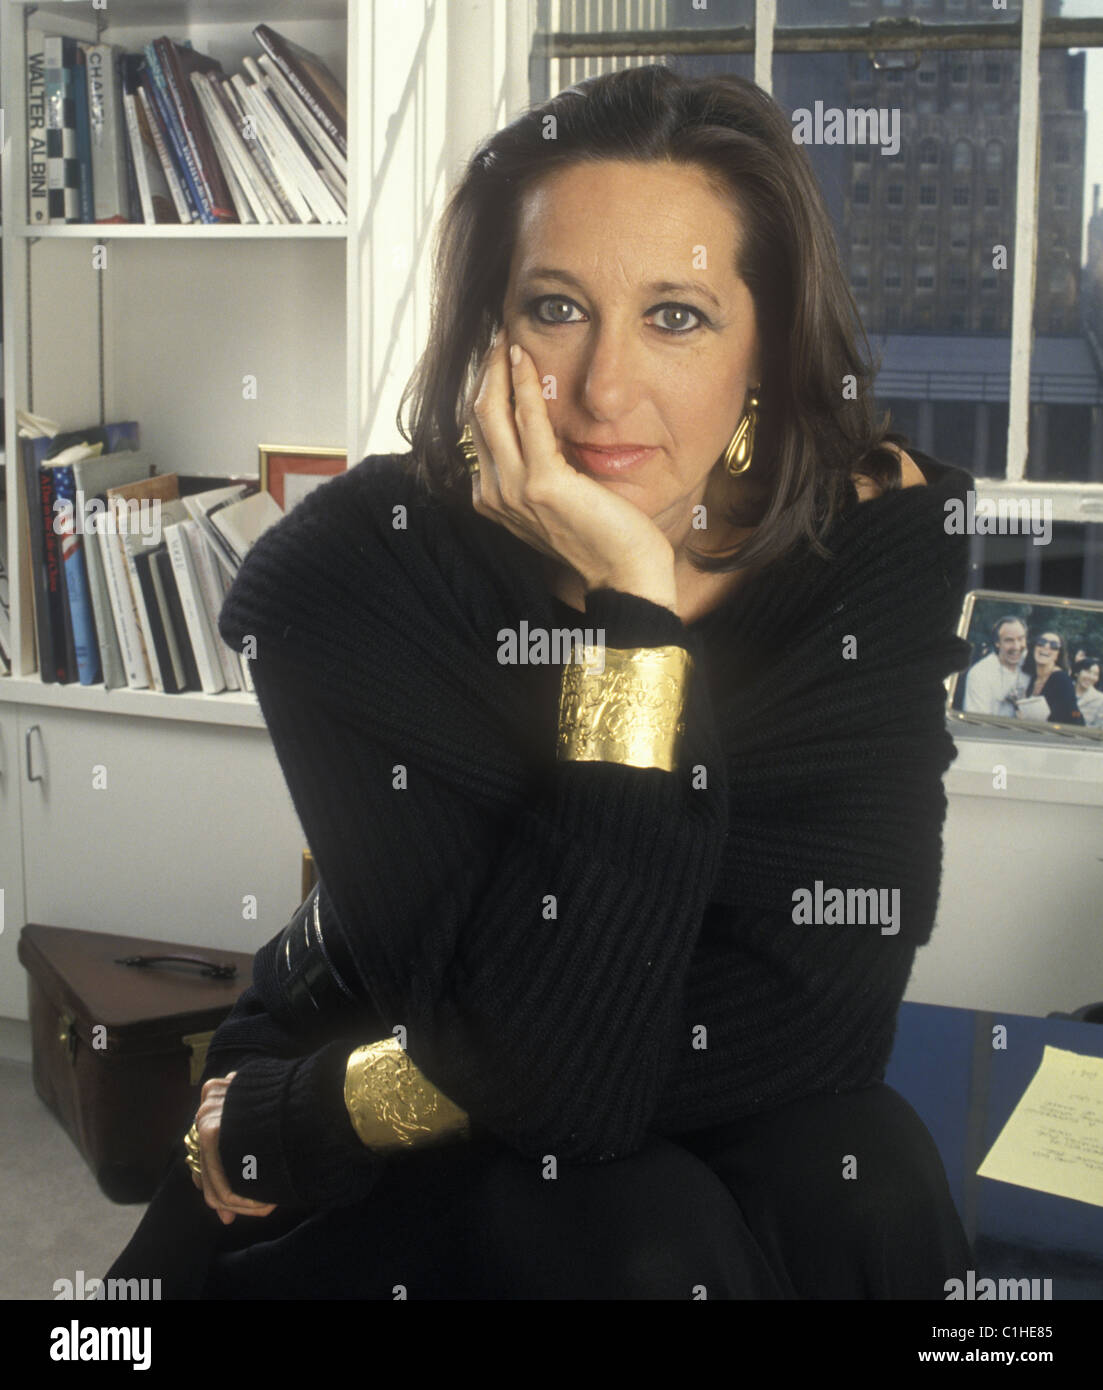 Donna Karan High Resolution Stock Photography And Images Alamy